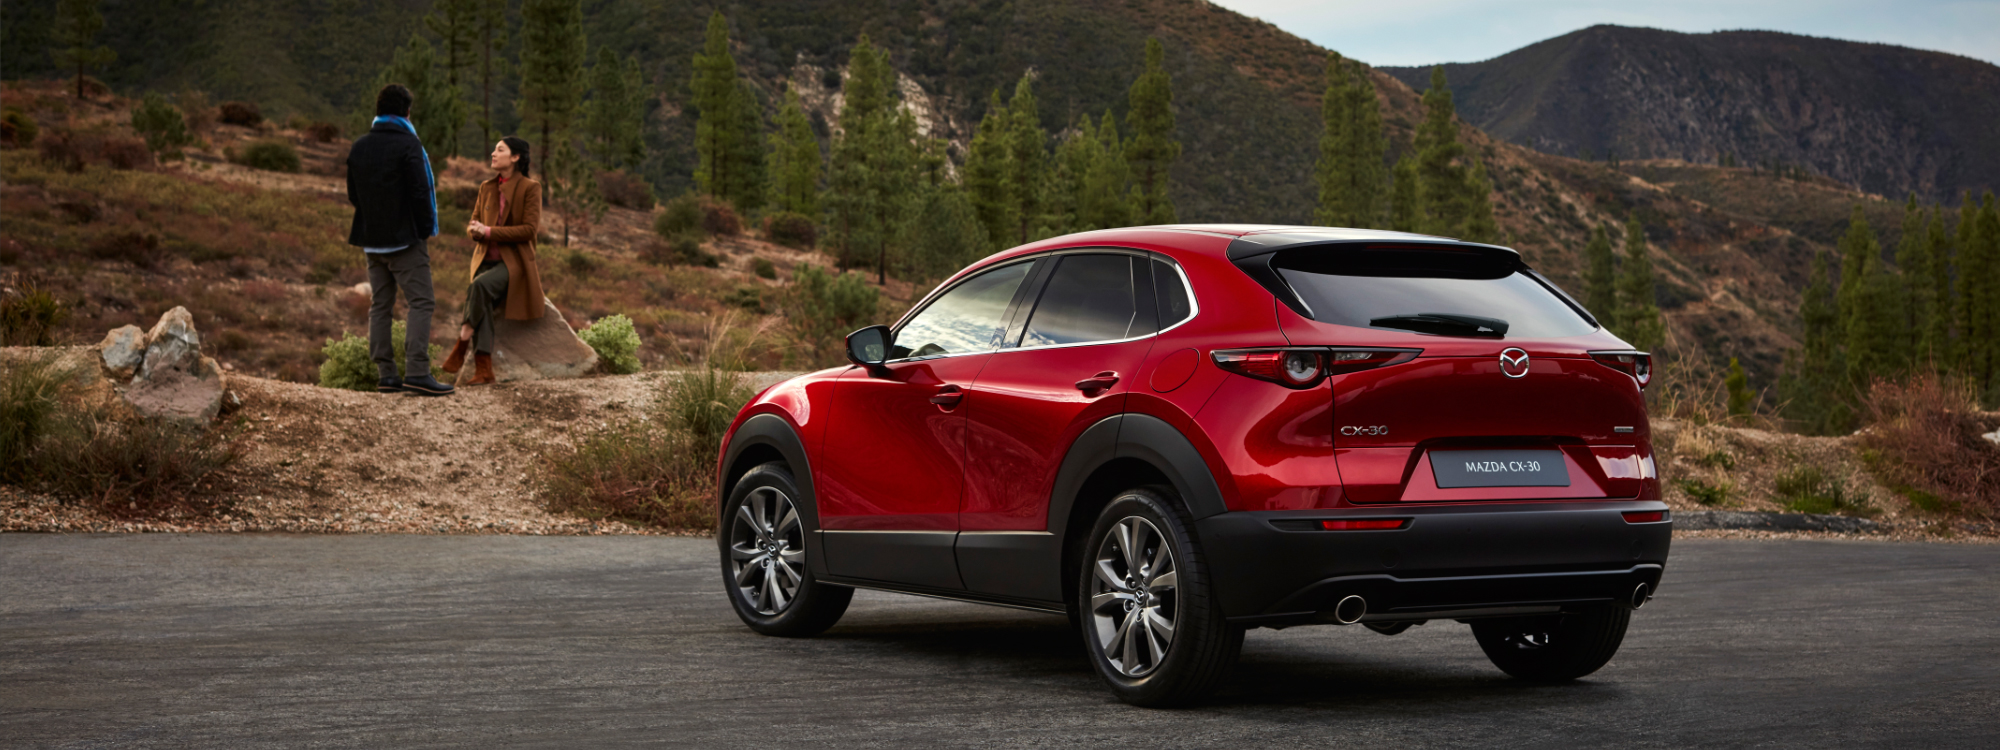 Mazda CX-30 in nature